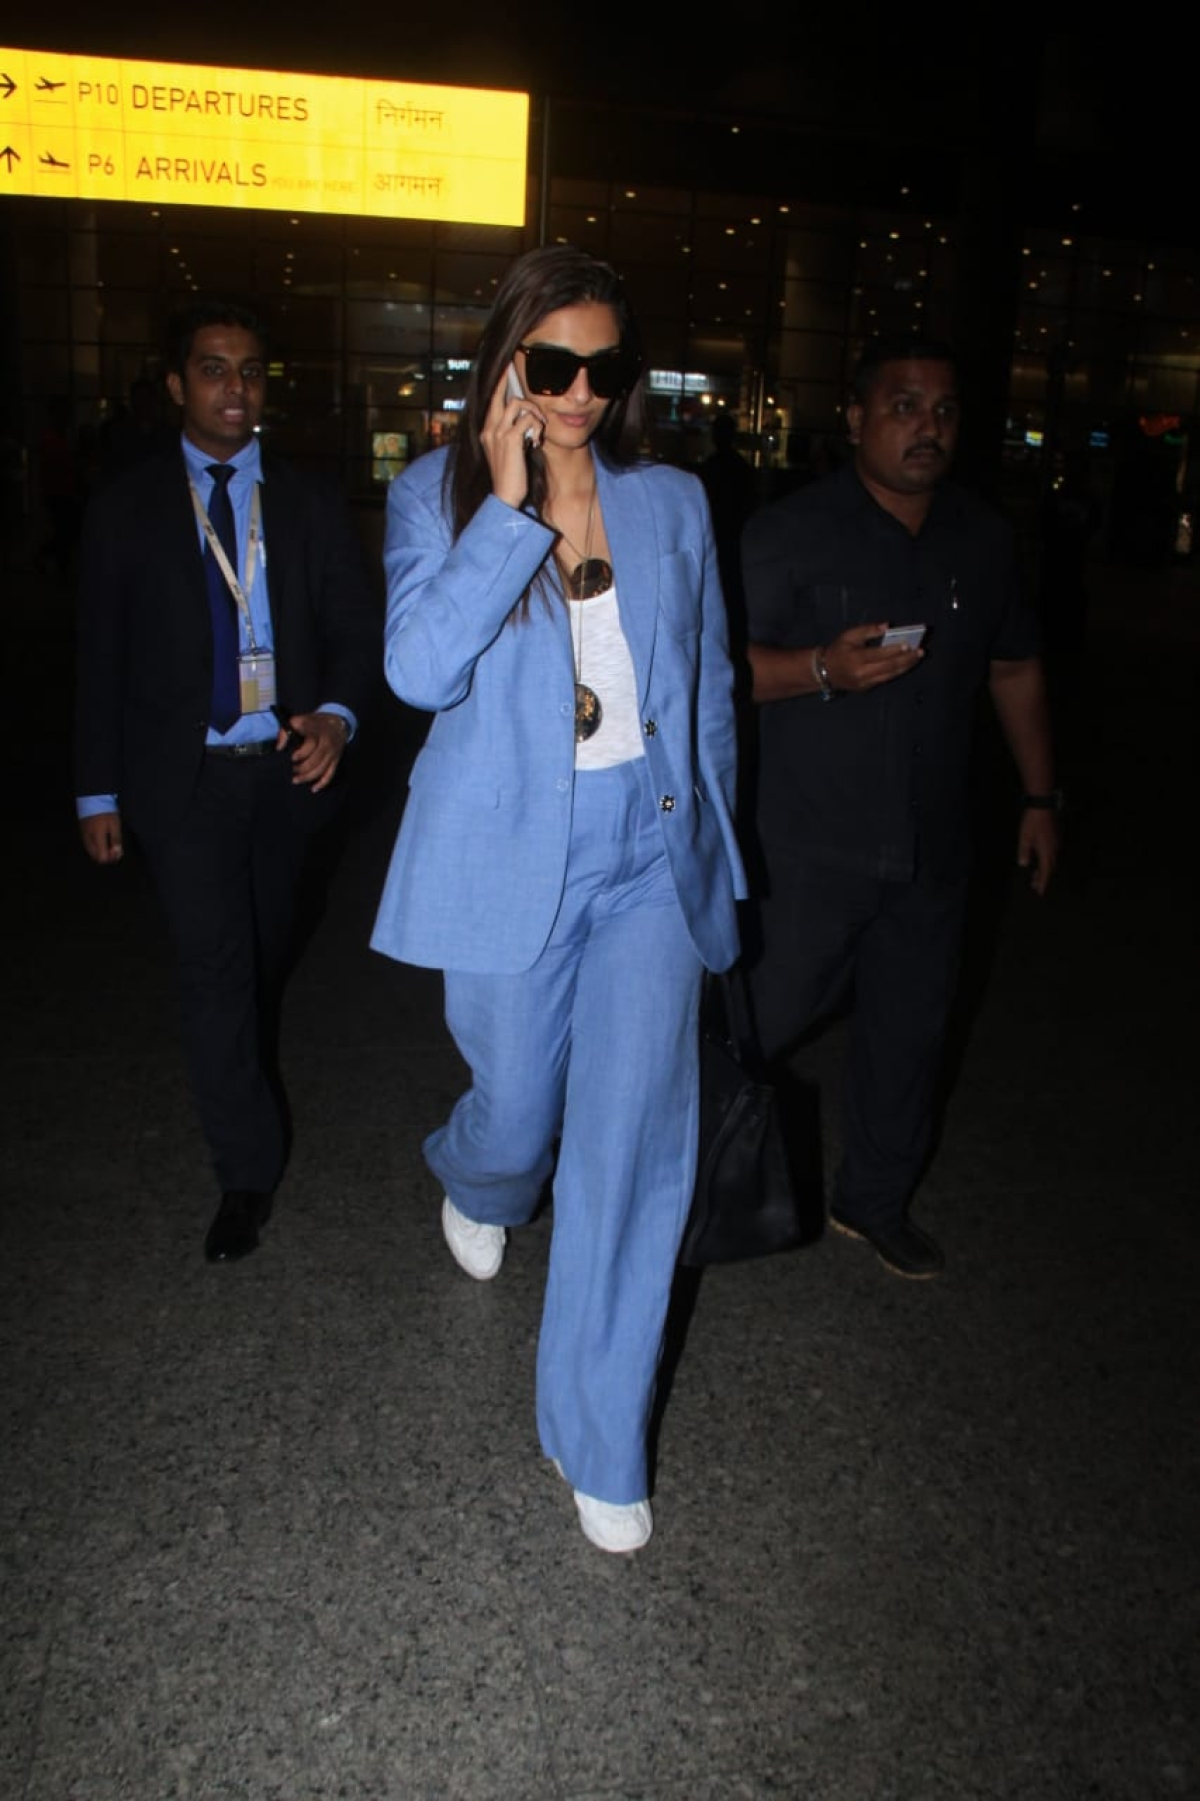 Sonam Kapoor Ahuja who was in the city for Rakshabandhan has left for London and was spotted by shutterbugs at airport.